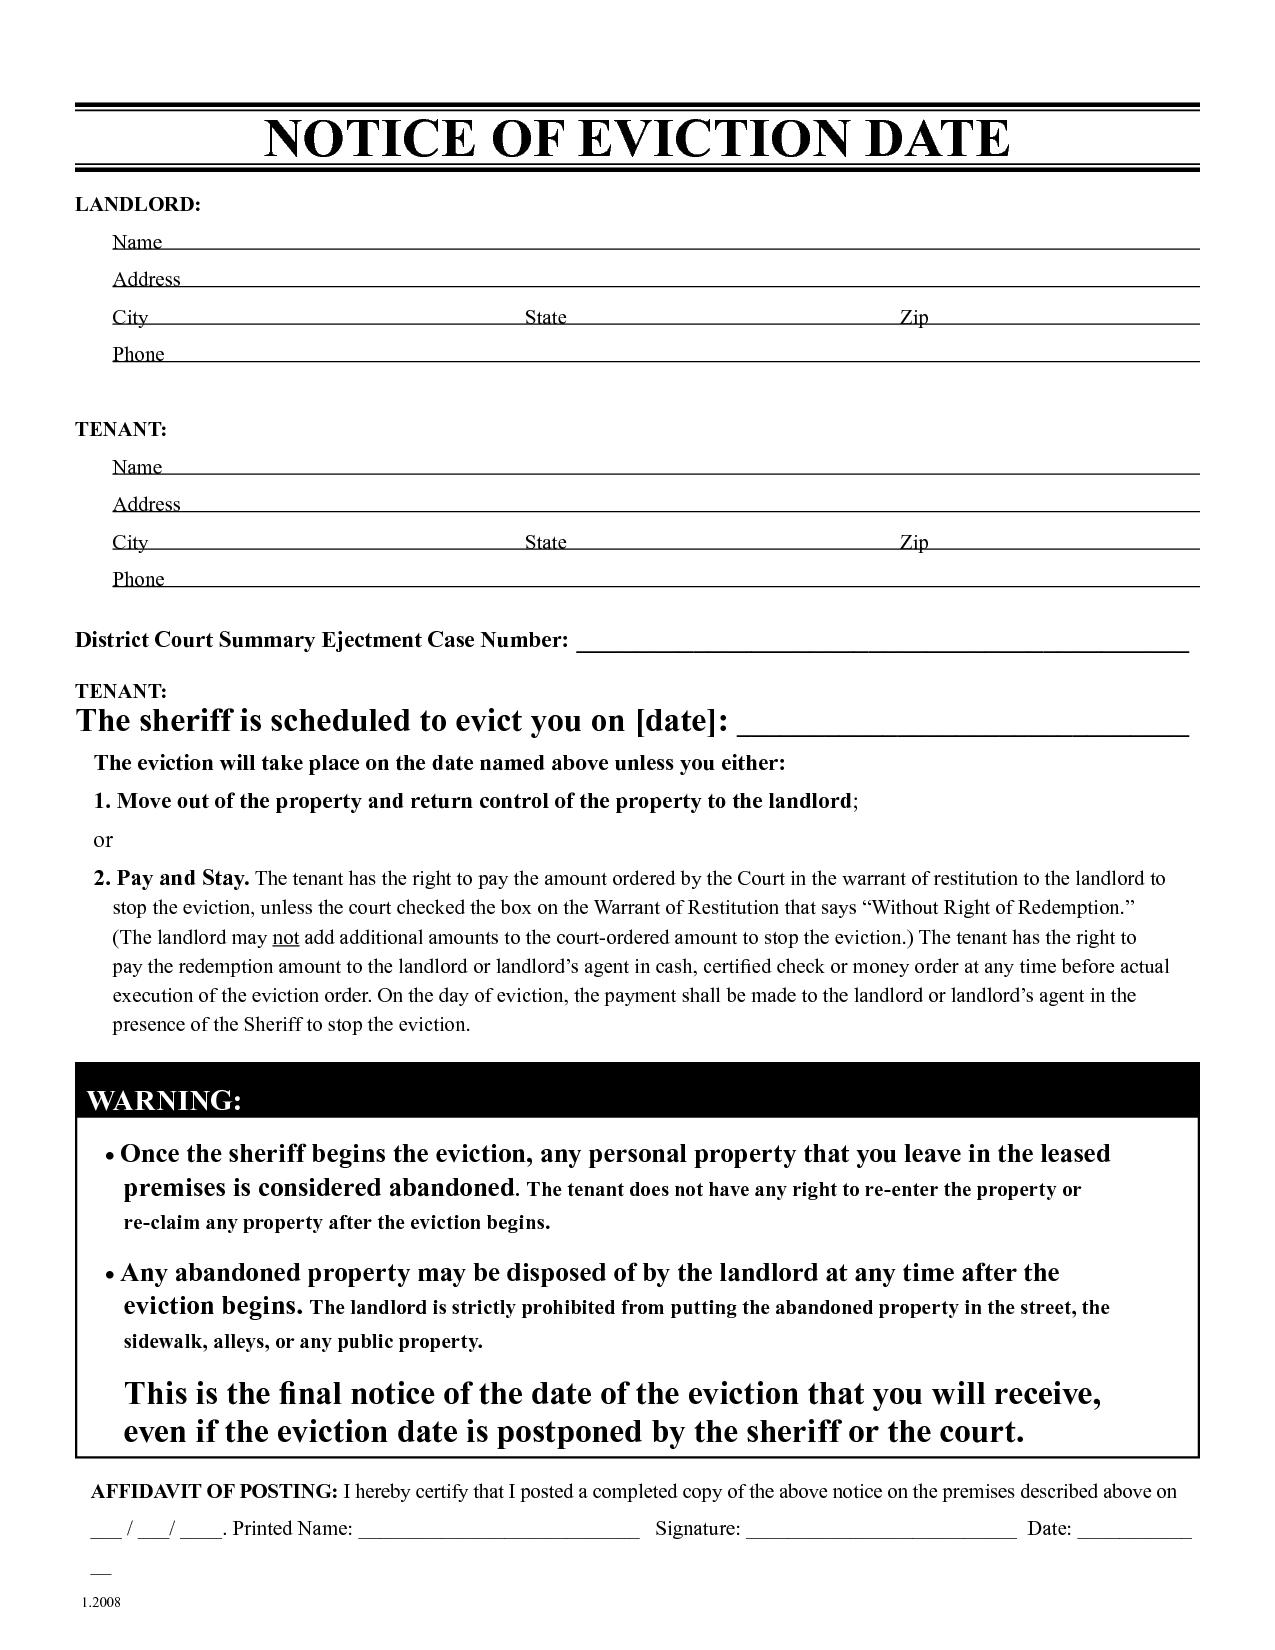 Free Landlord Eviction Notice Template